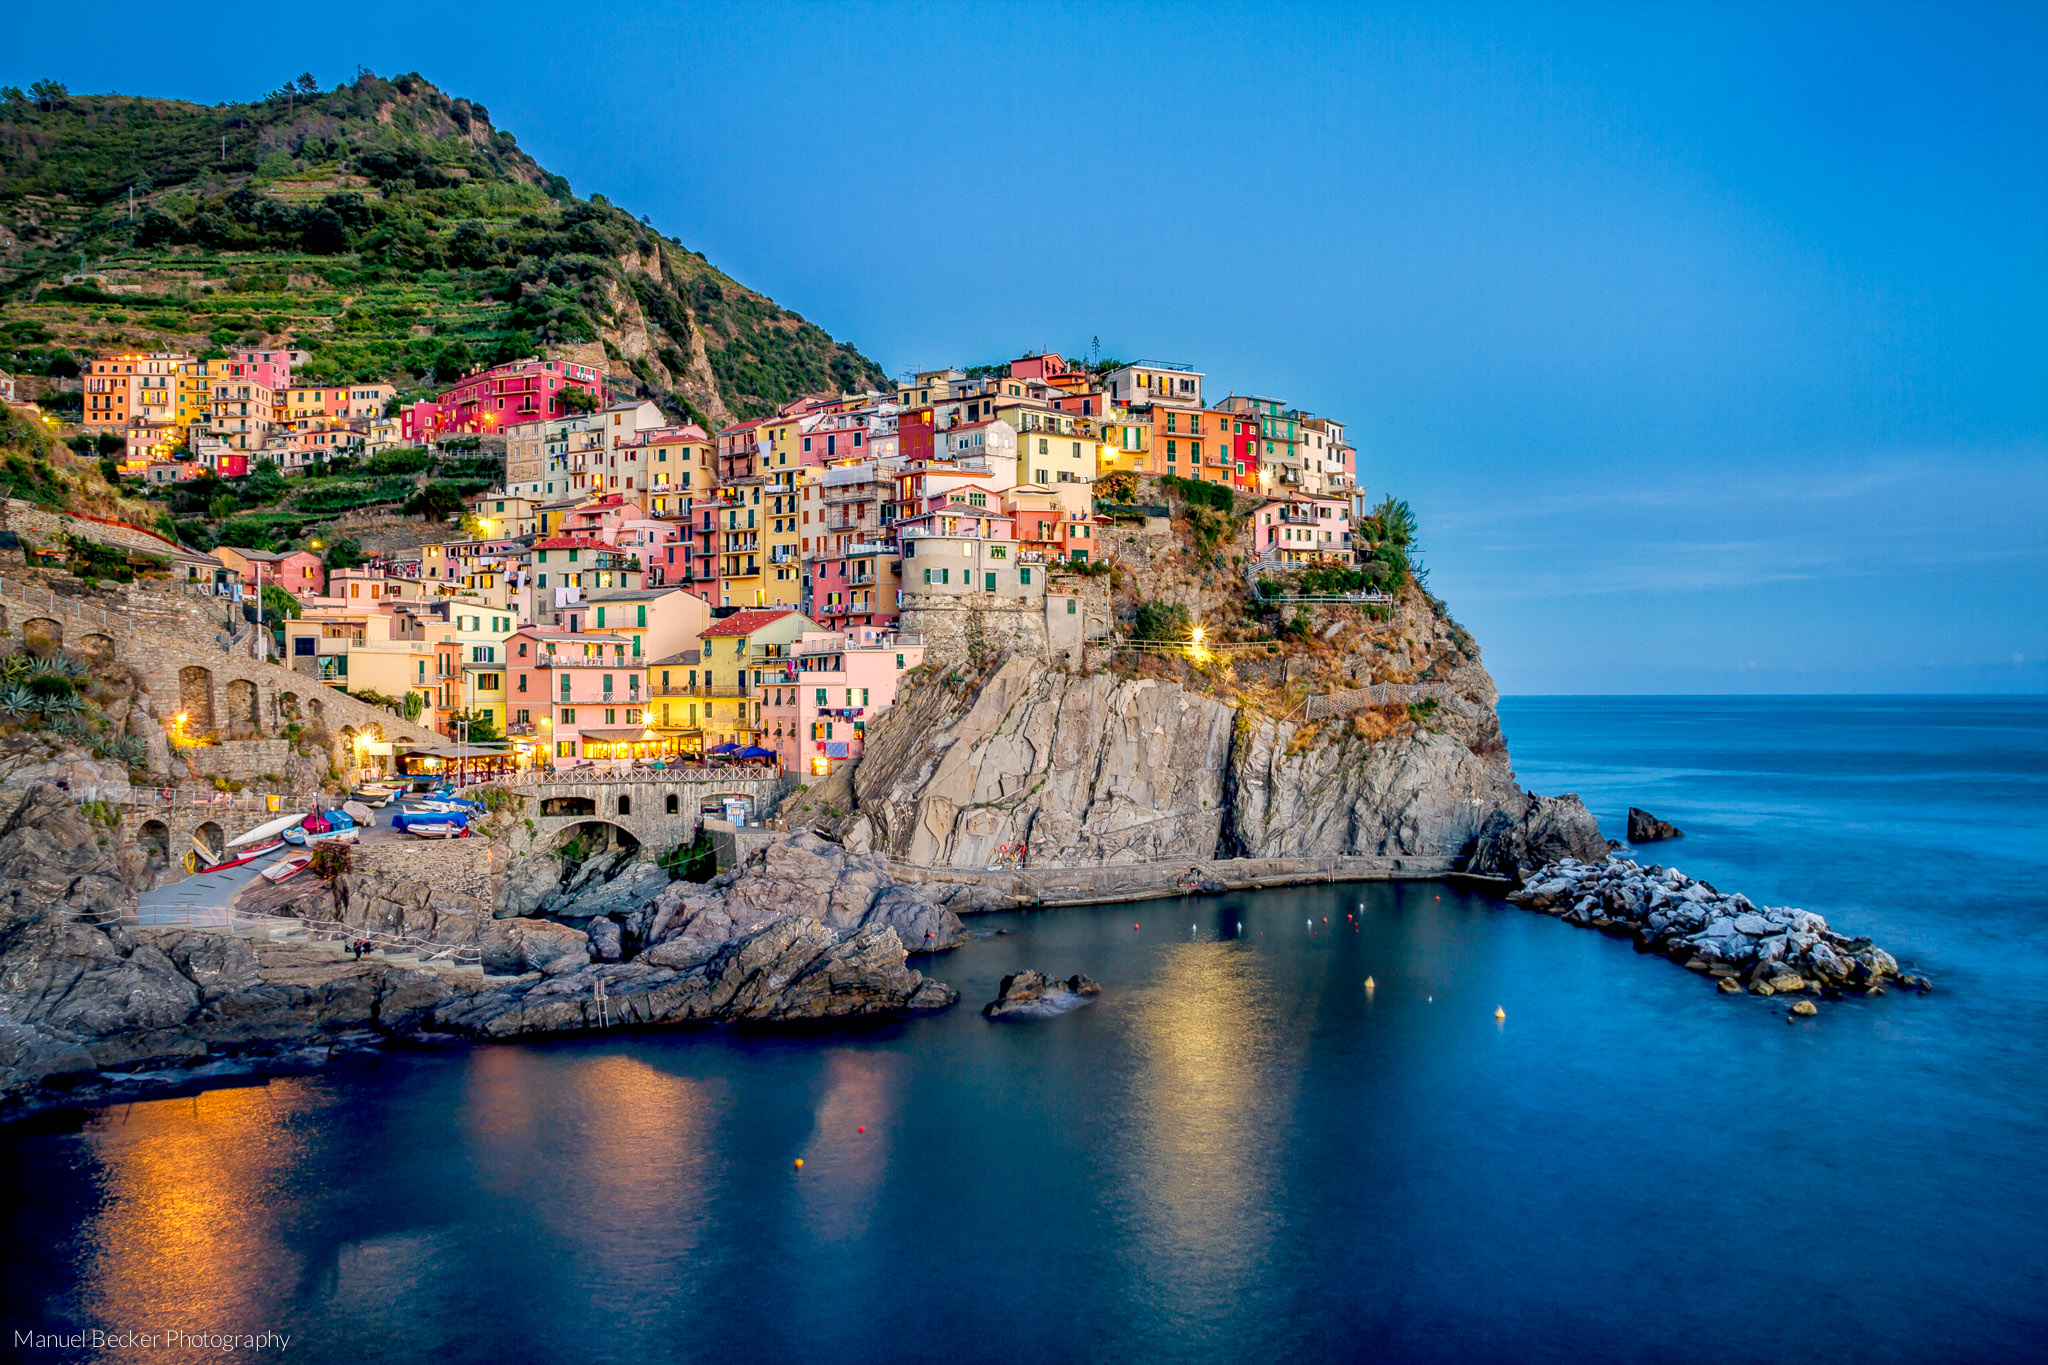 Manarola in the evening, Cinque Terre, Italy